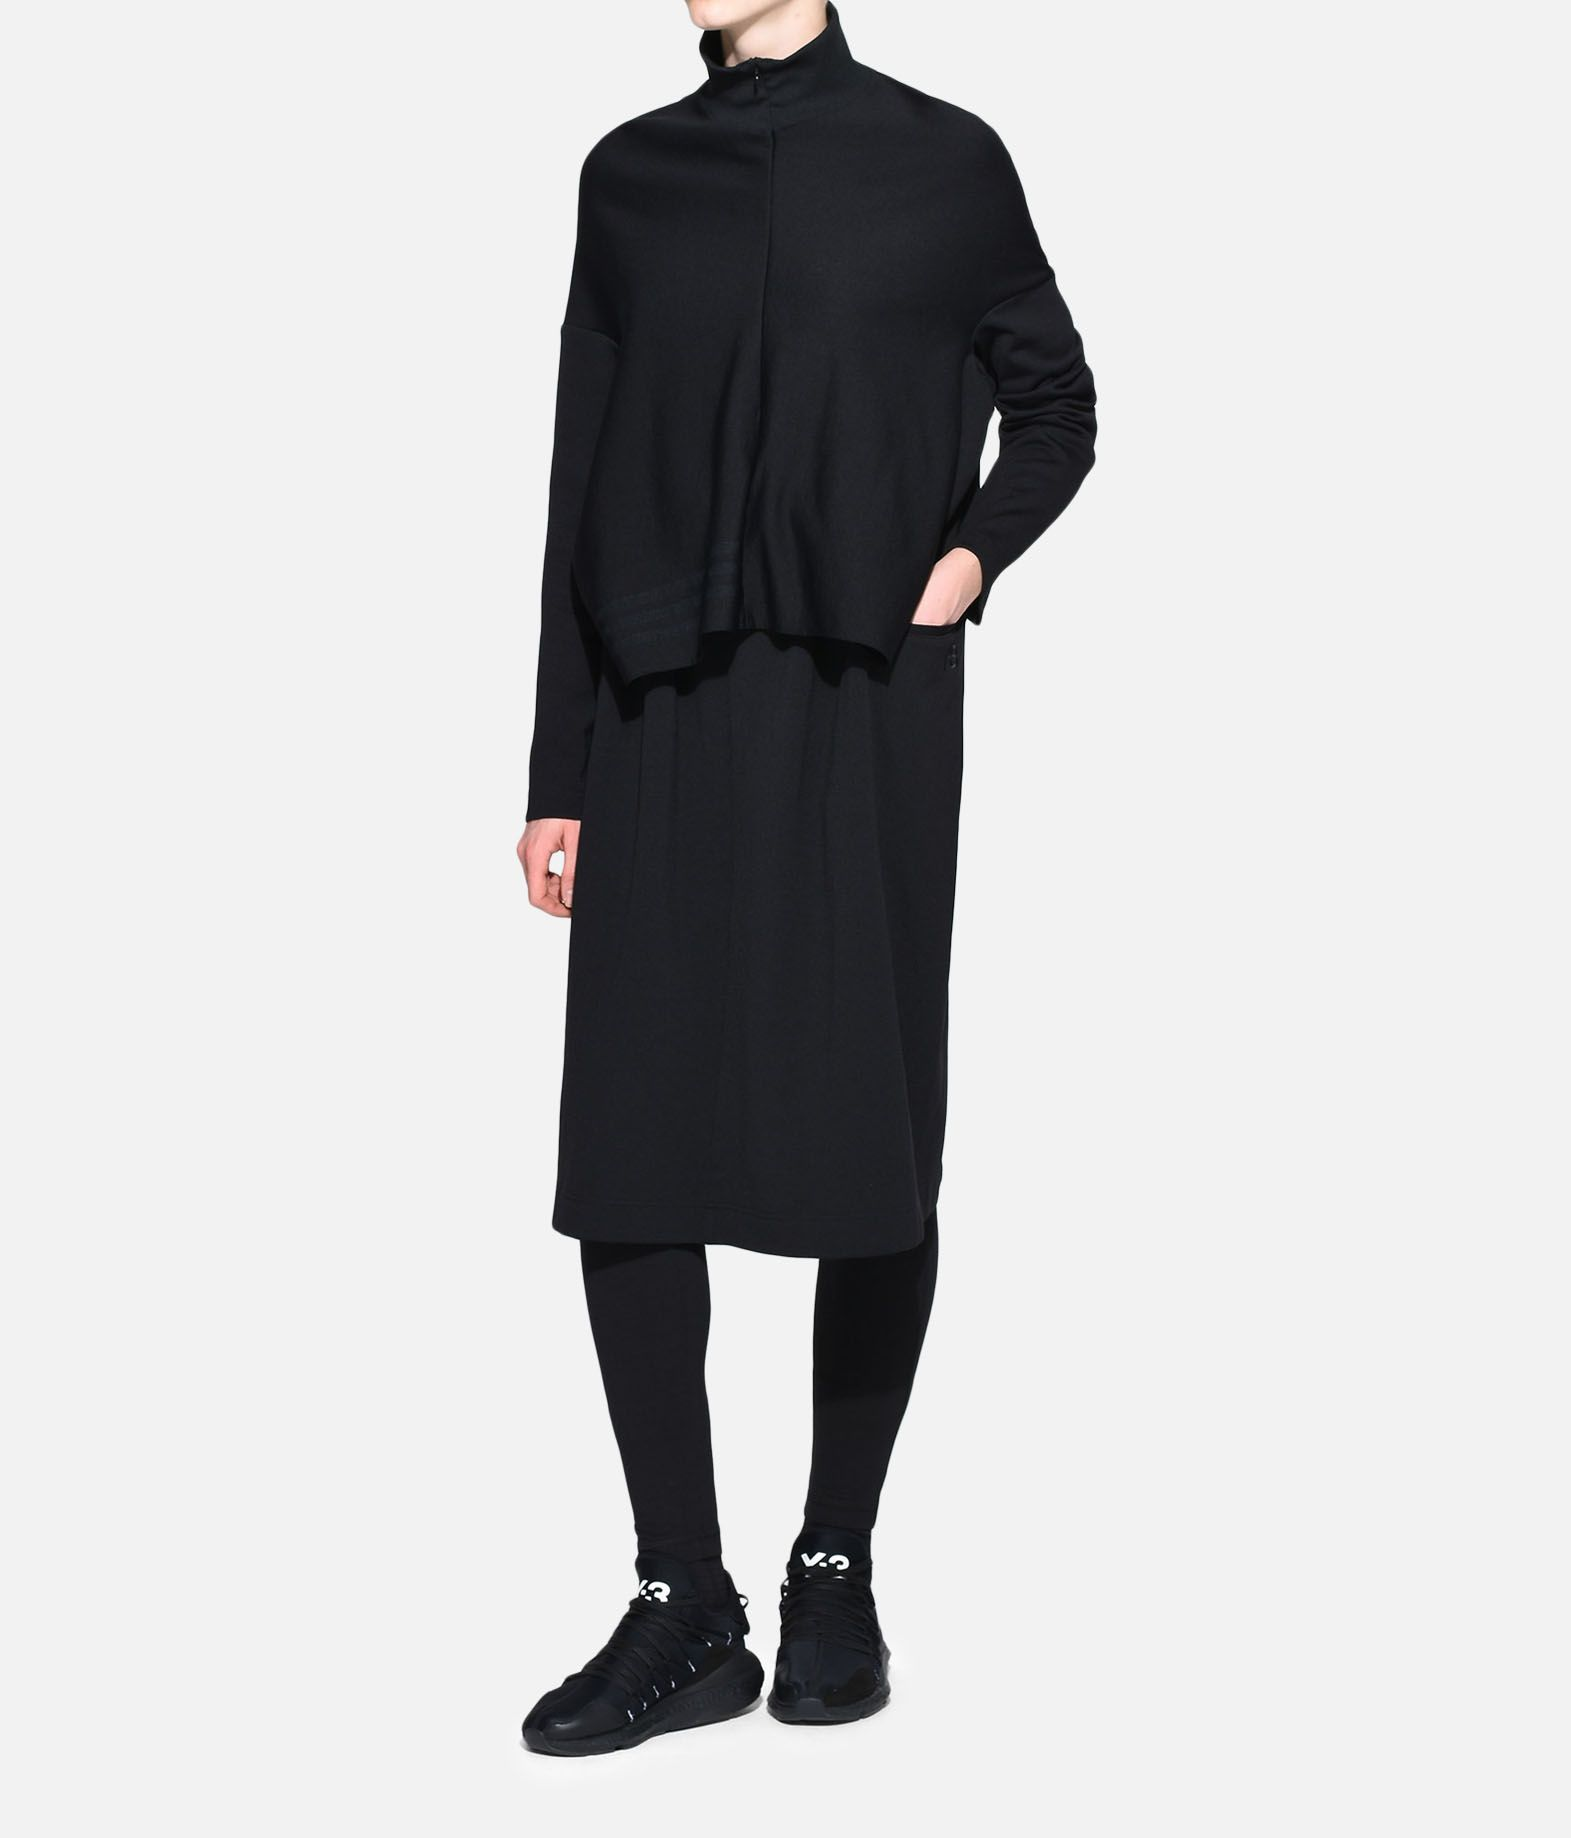 Y-3 Y-3 Matte Track Dress Robe mi-longue Femme a